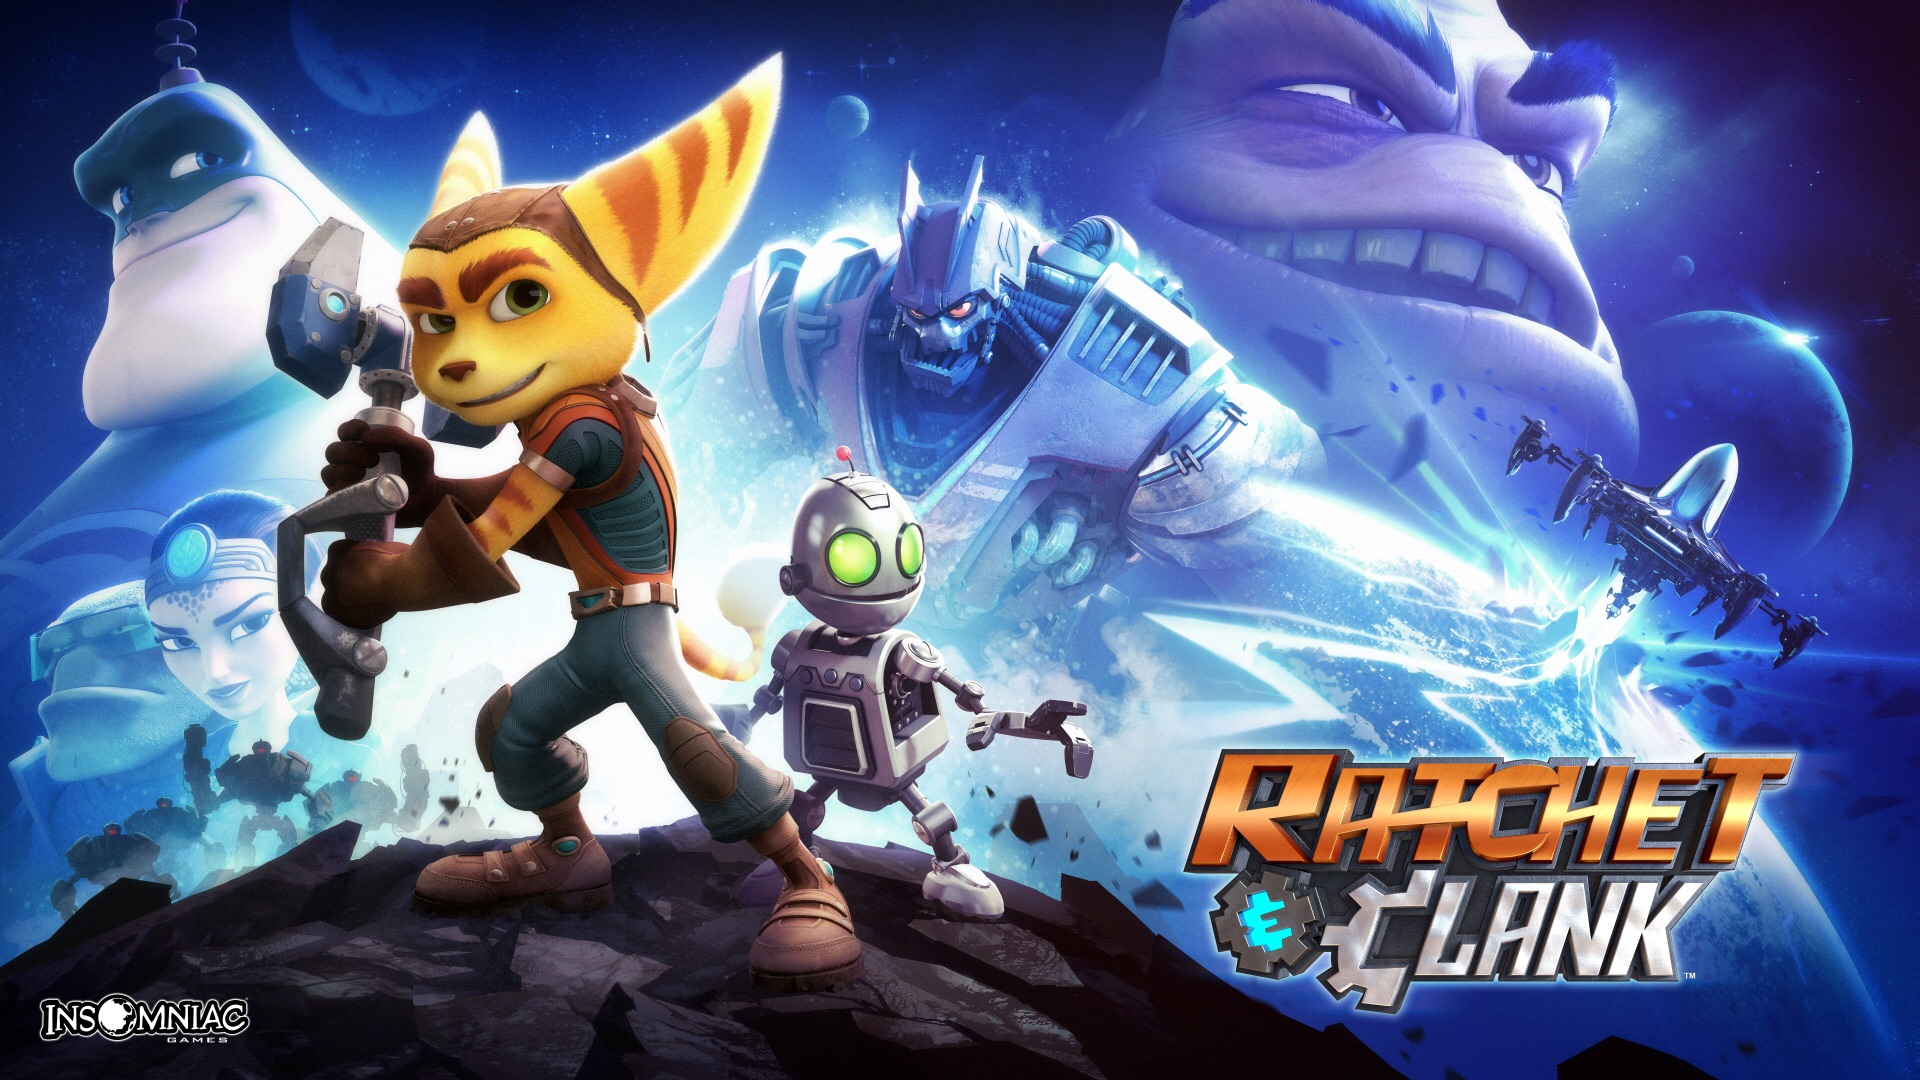 Ratchet And Clank Ps4 Wallpaper By Caprice1996 On Deviantart